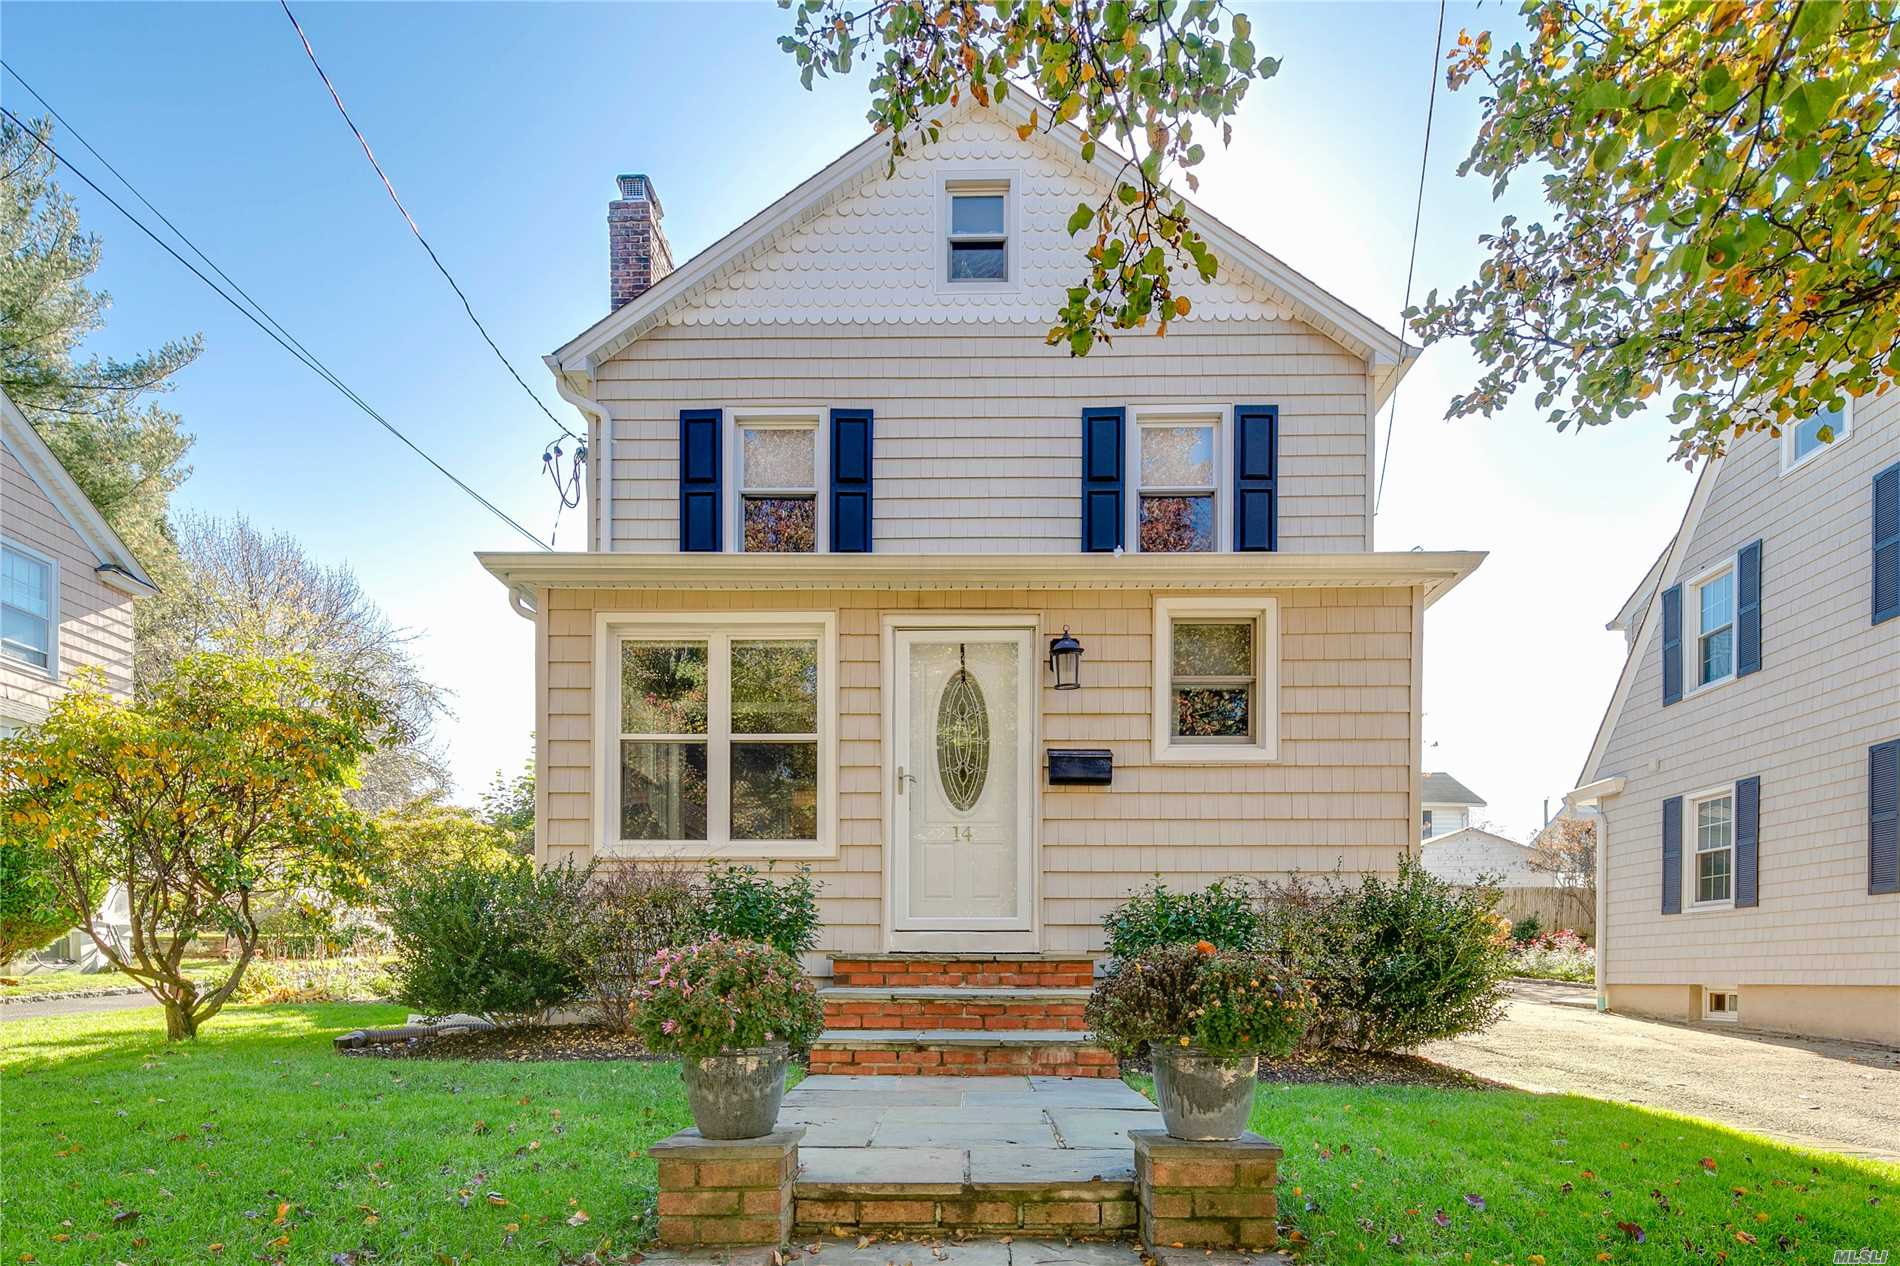 Move Right In To This Lovely And Bright Park Section Colonial. Charm Combined With Open Living Spaces, You Will Instantly Feel At Home. Highlights Include Central Air, Hardwood Floors, Gas Heat, Playroom And Lots Of Storage. Great Location Close To Town And Train.